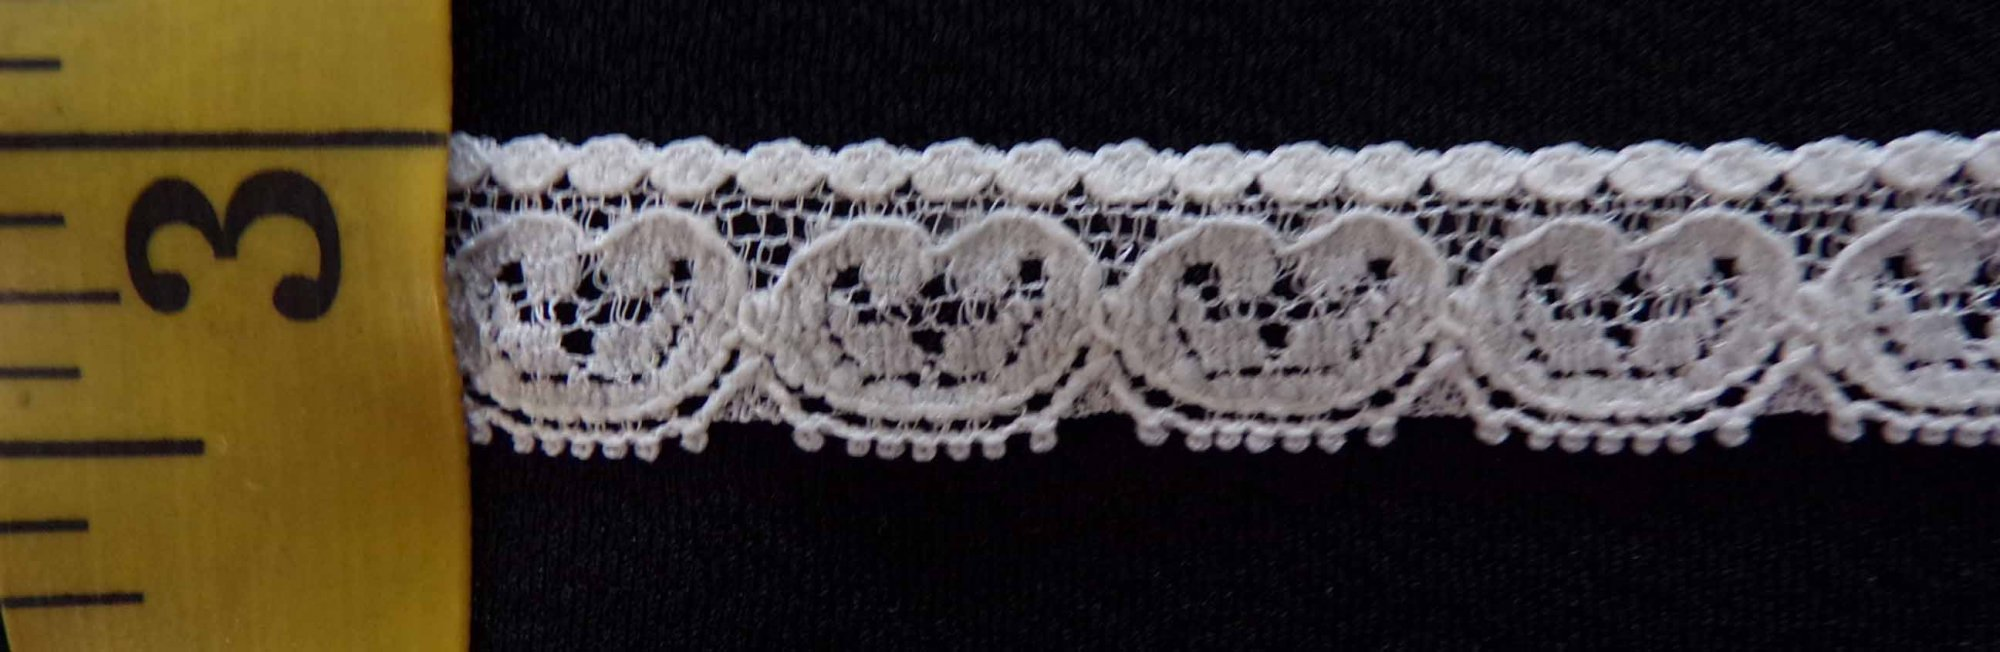 3/8 Rigid Lace - Cream